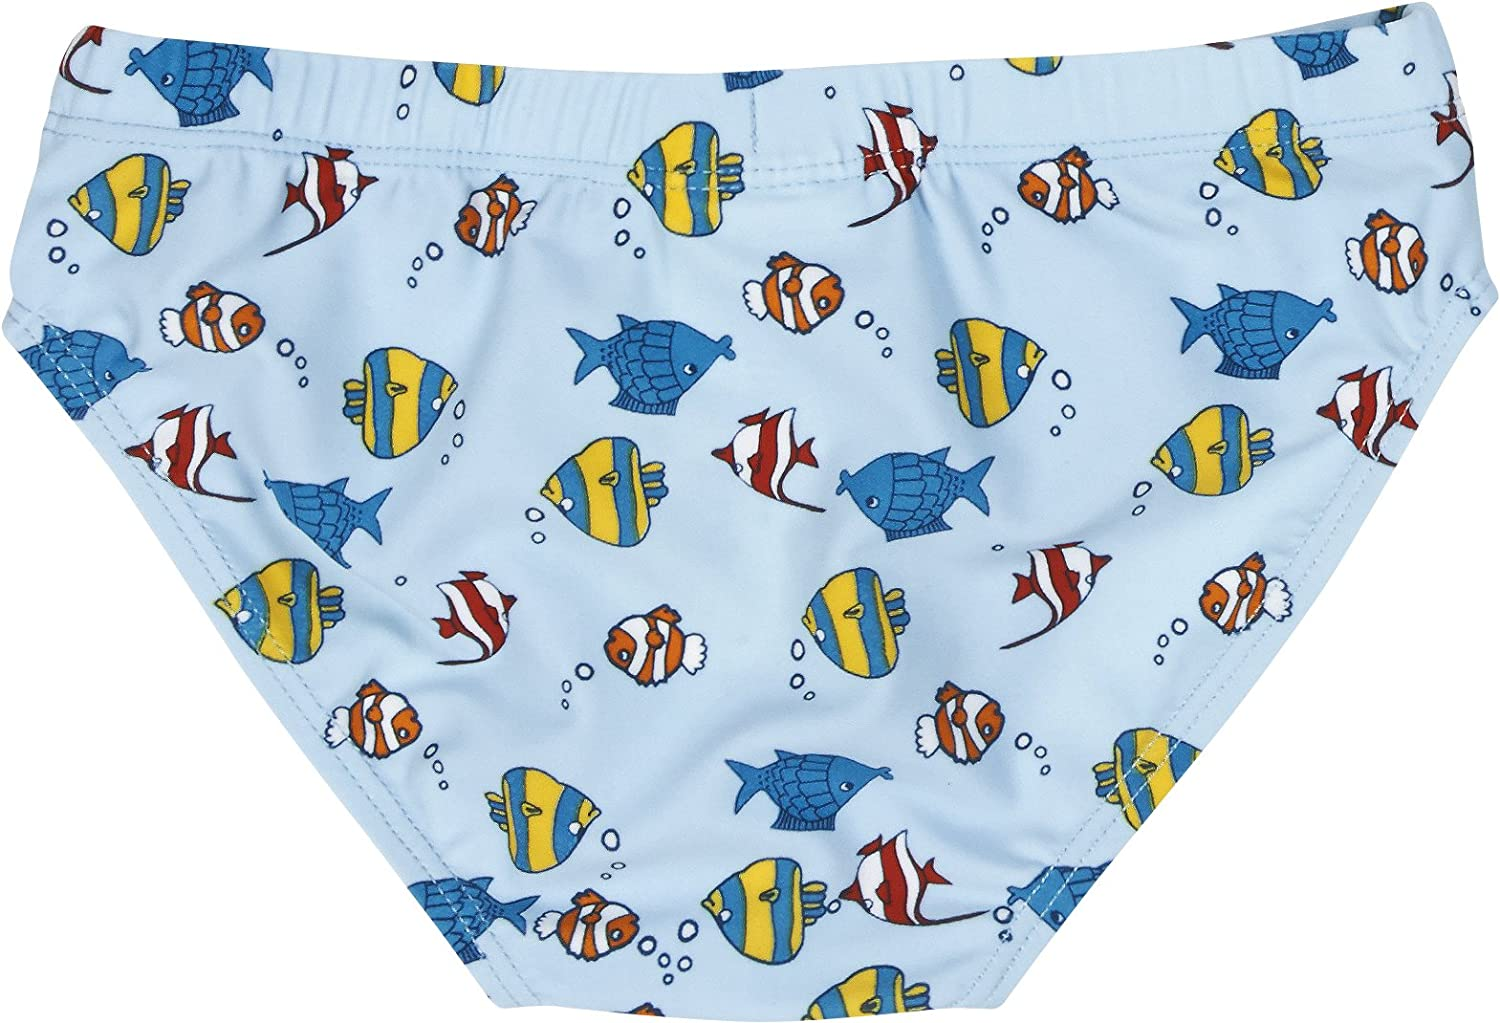 Playshoes Boys UV Sun Protection Swimming Fish Trunks